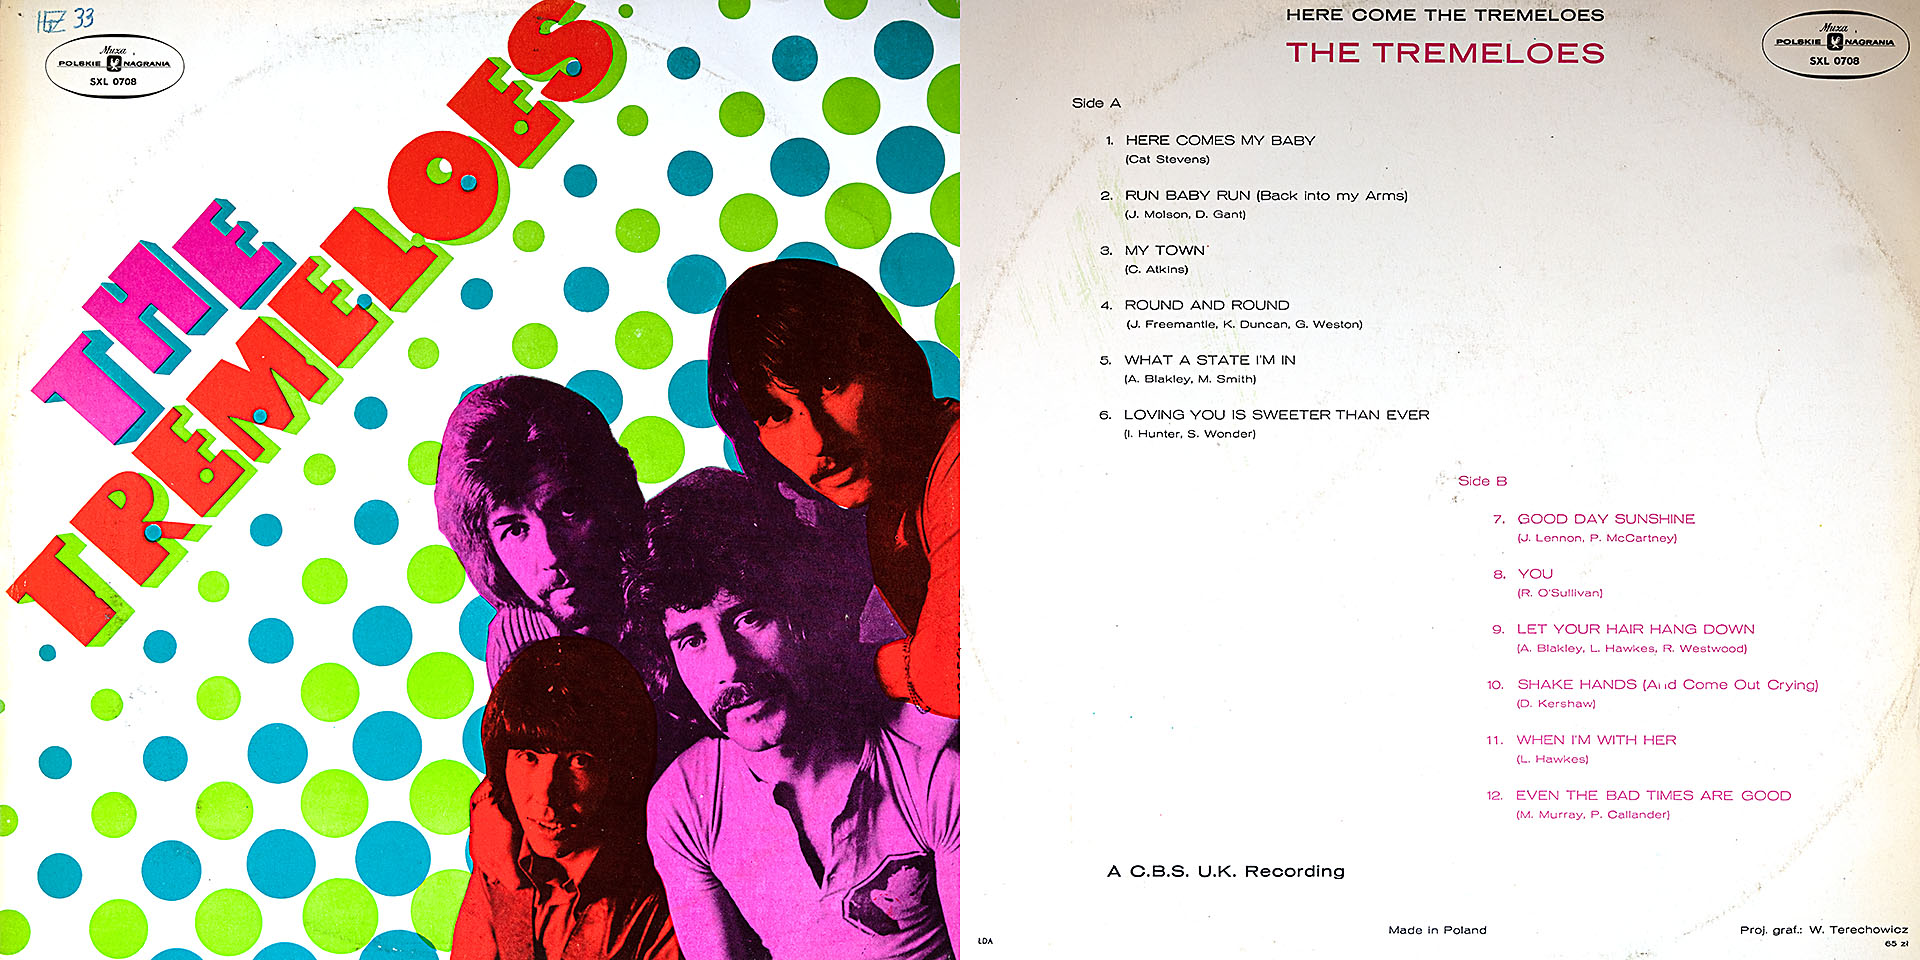 The Tremeloes - The Tremeloes